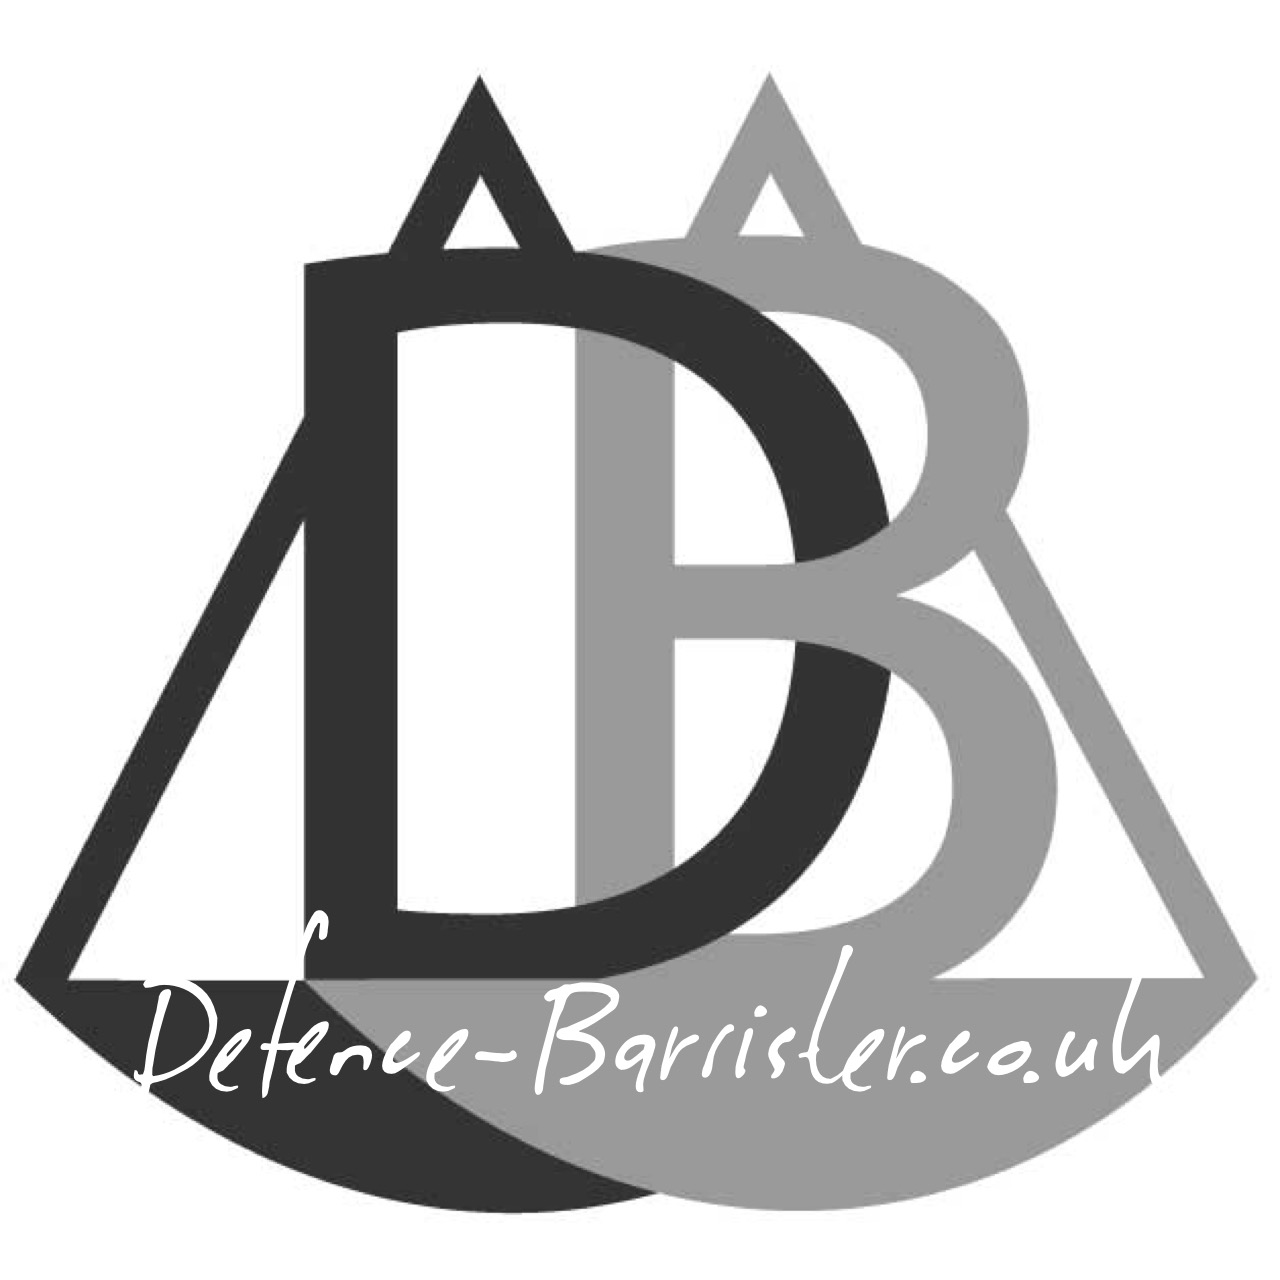 Defence-Barrister.co.uk logo